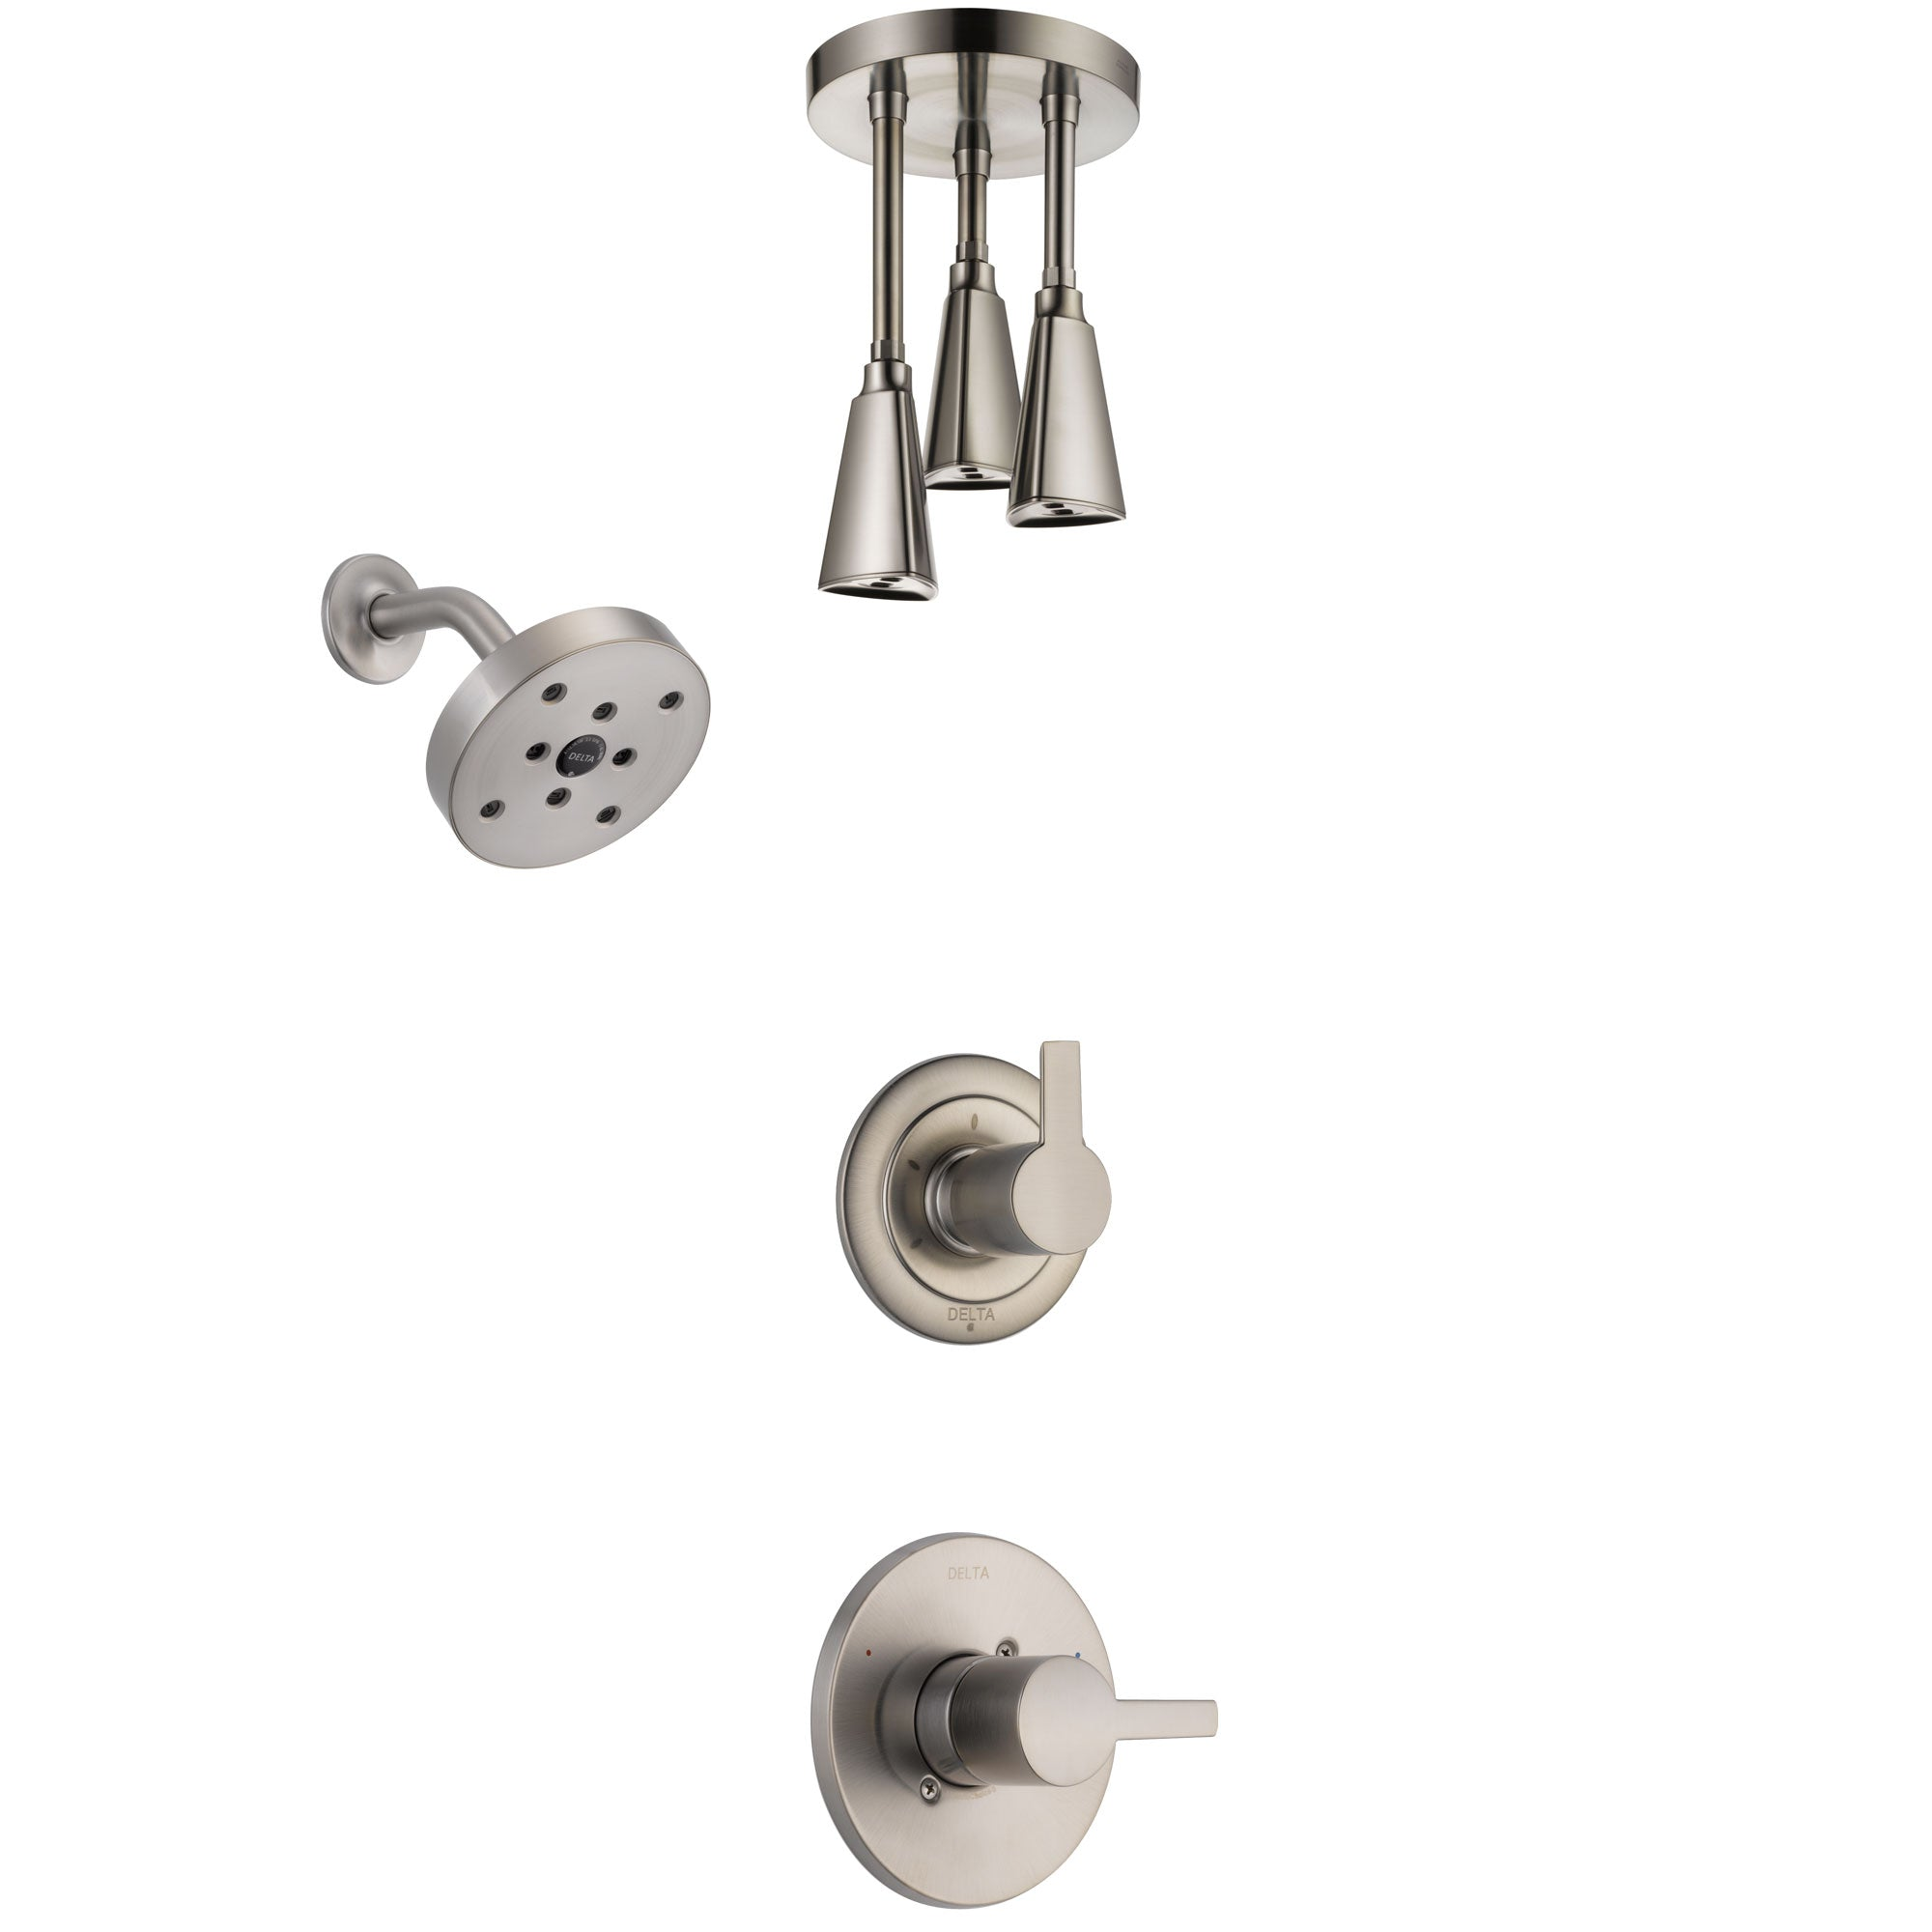 Delta Compel Stainless Steel Finish Shower System with Control Handle, 3-Setting Diverter, Showerhead, and Ceiling Mount Showerhead SS142611SS6